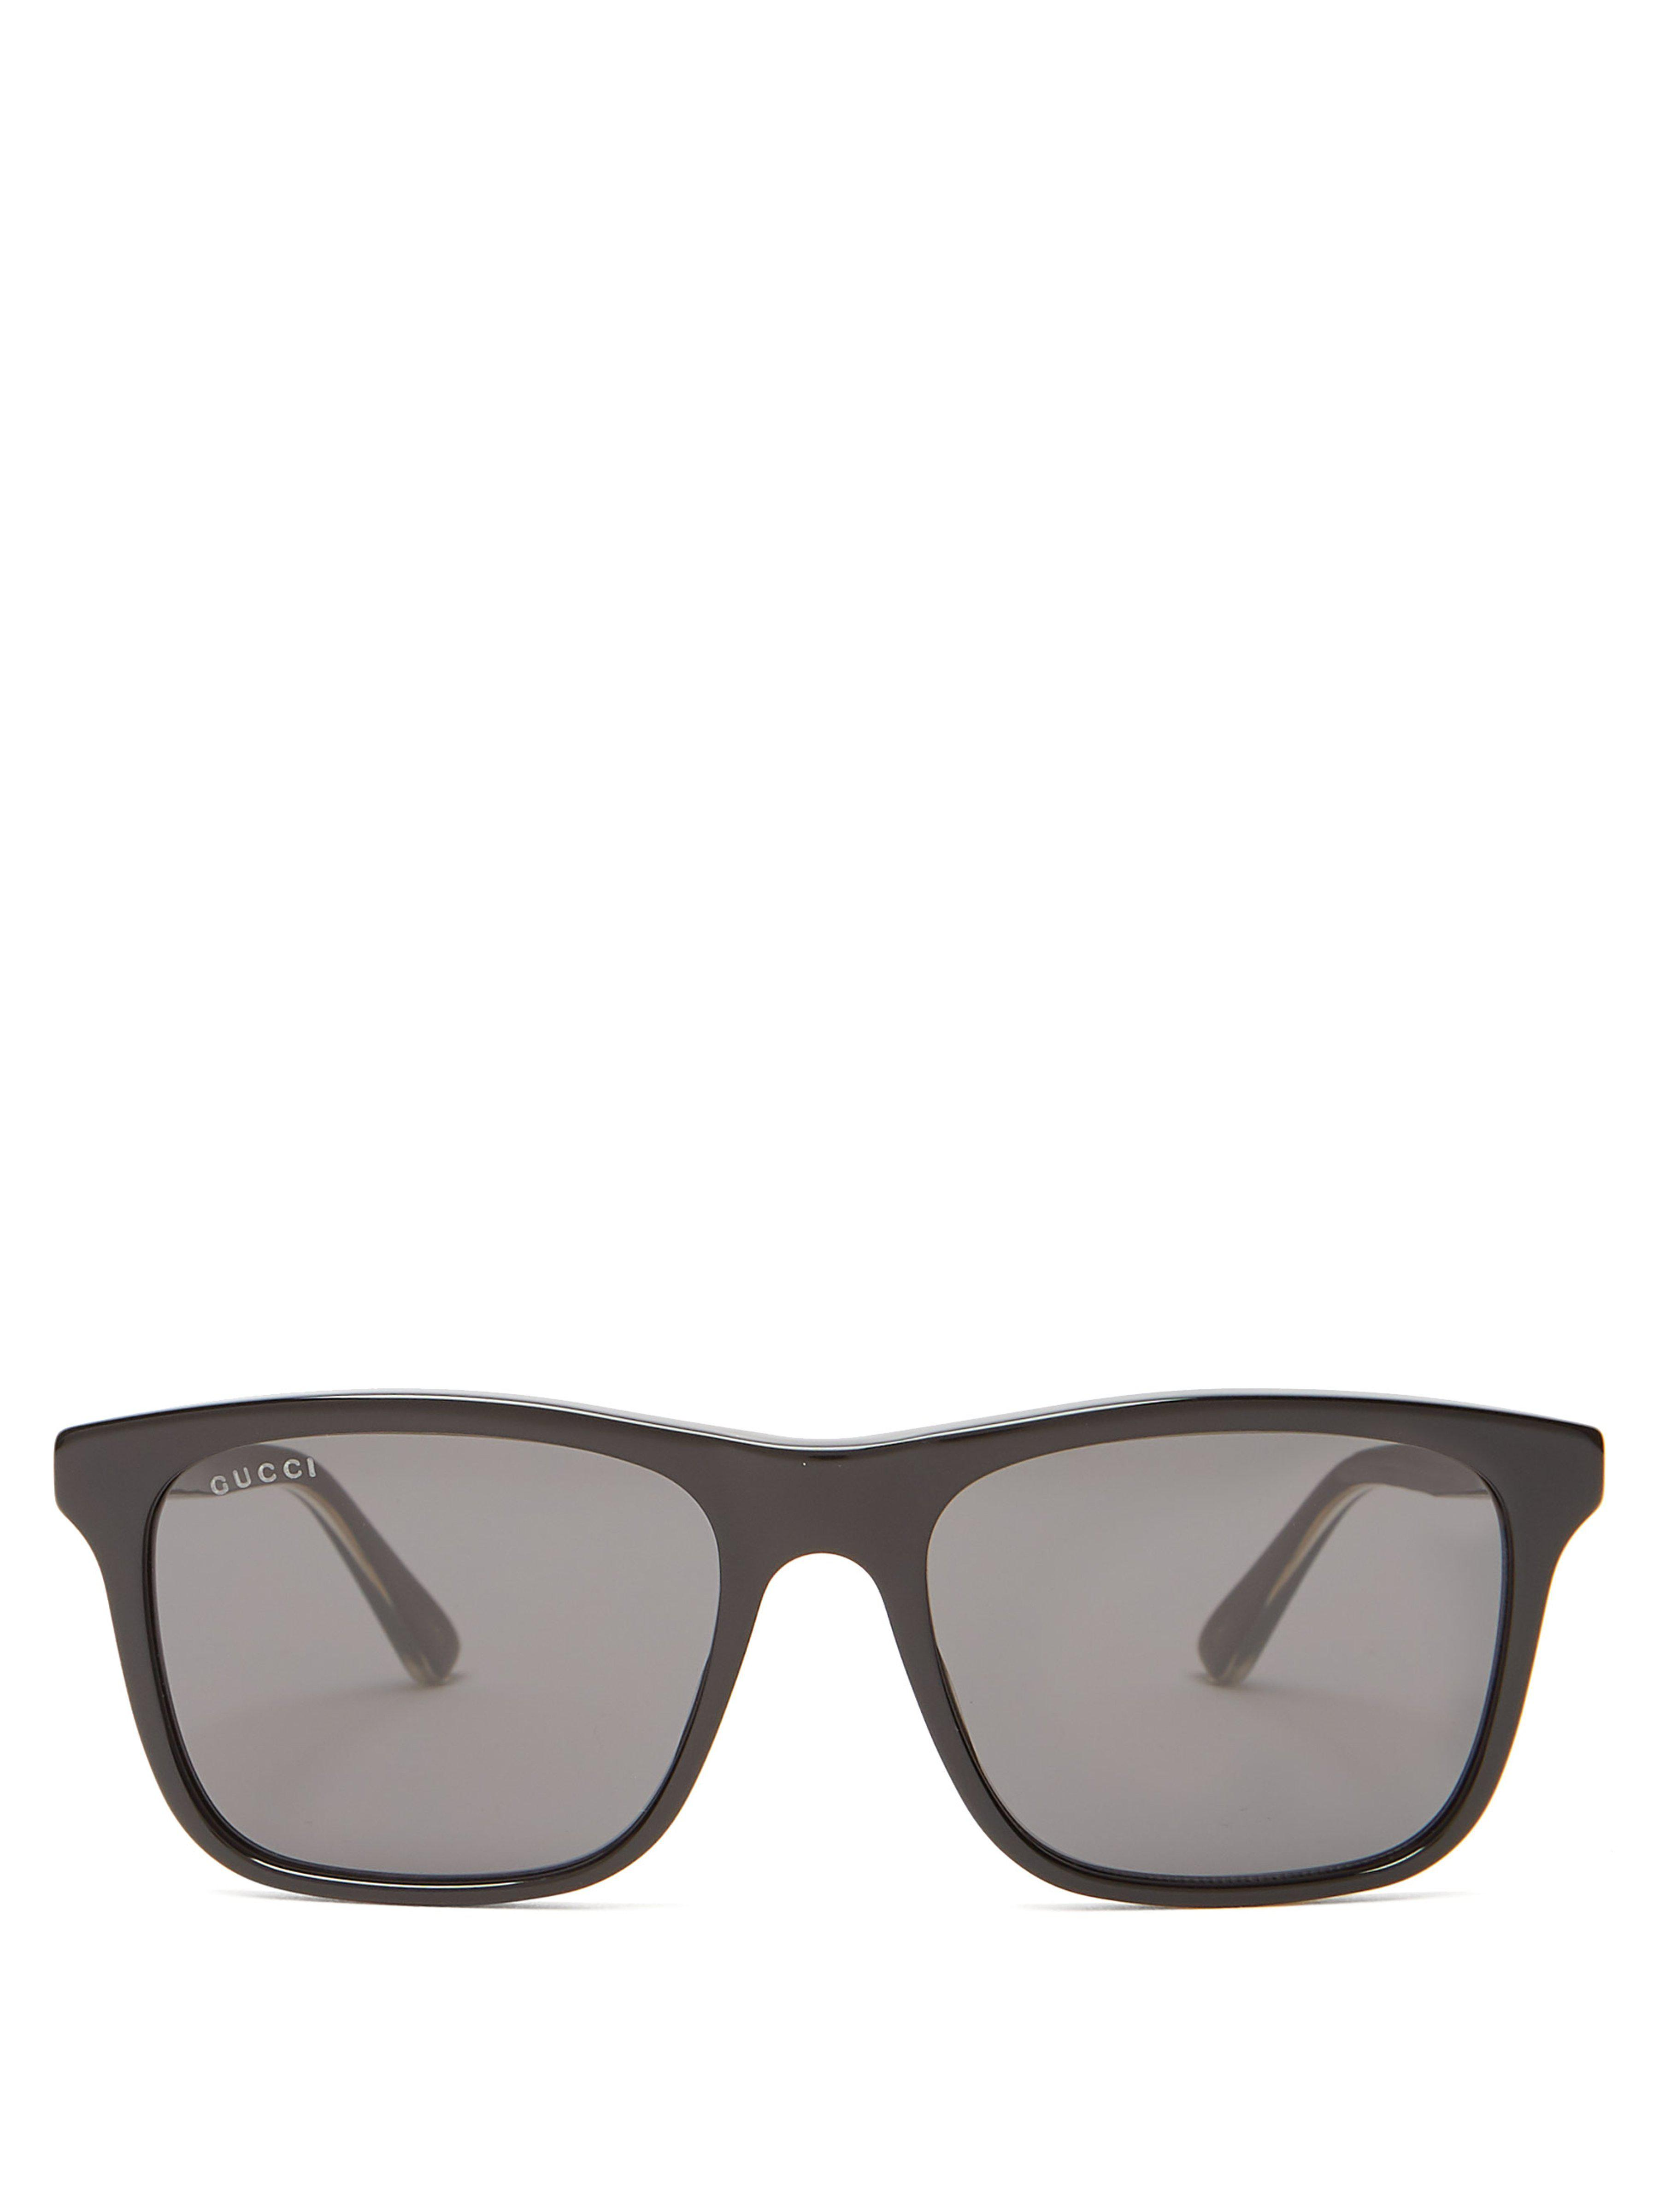 e29dd5ea063 Gucci - Black Square Frame Acetate Sunglasses for Men - Lyst. View  fullscreen